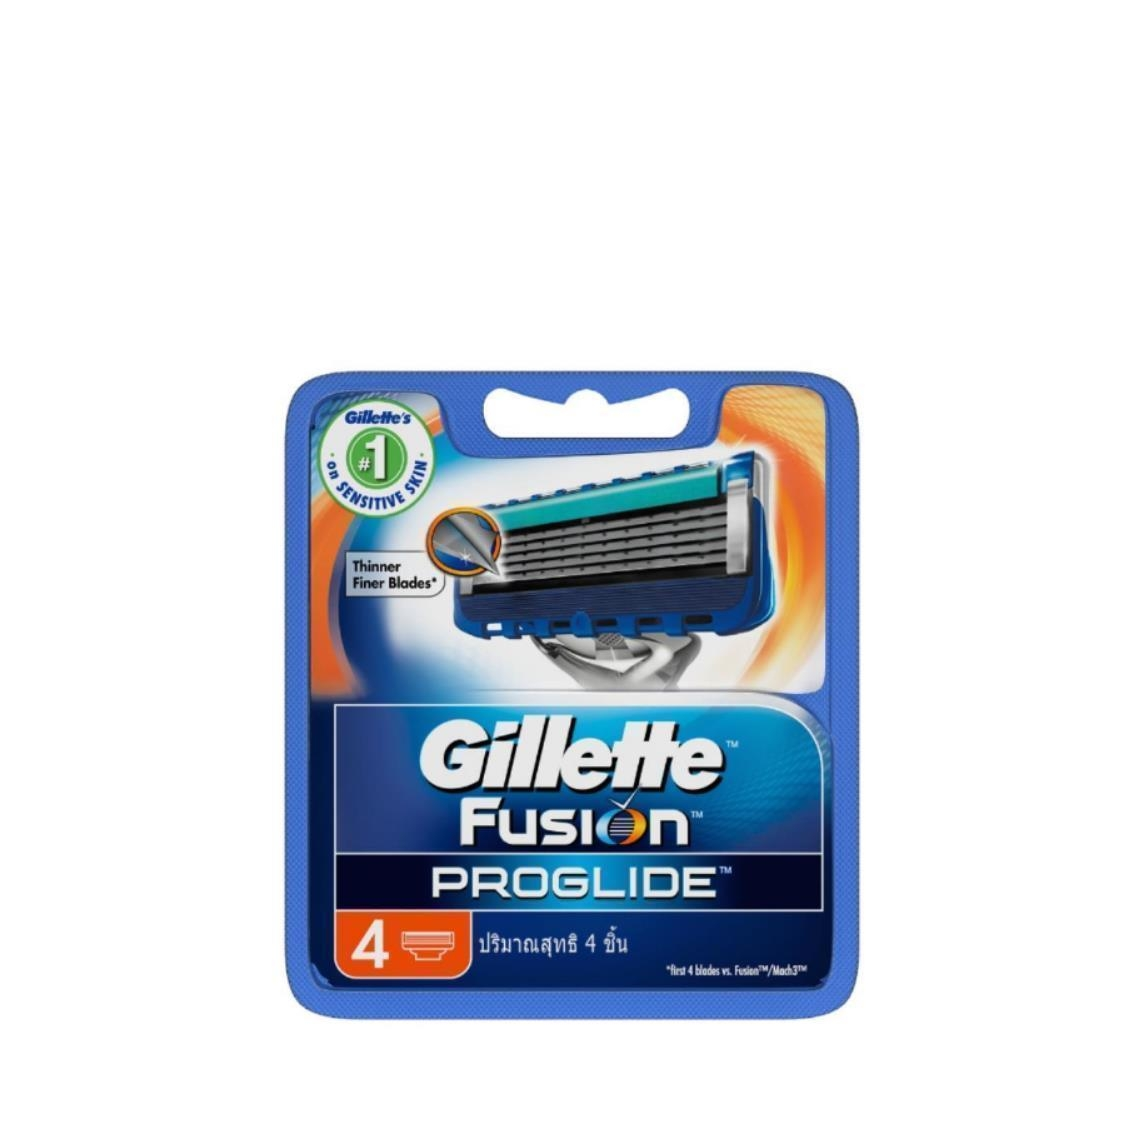 Fusion ProGlide MANUAL Mens Razor Blades 4 Count